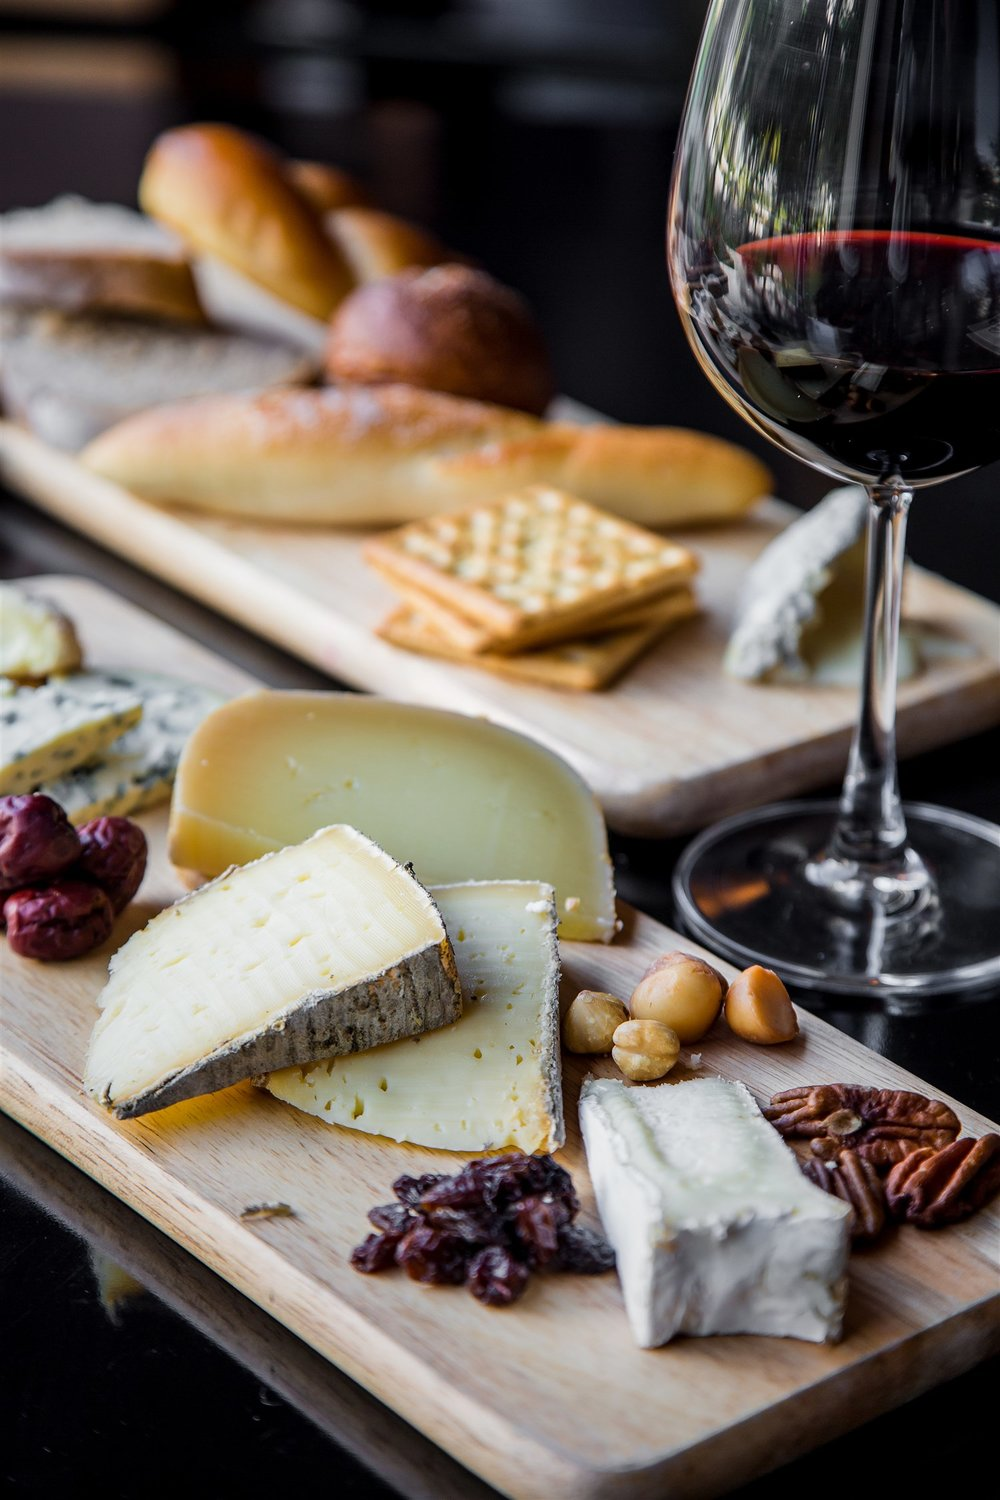 Basalt 's cheese platters are popular for apres-ski as well as late night eats.  Dreamstime